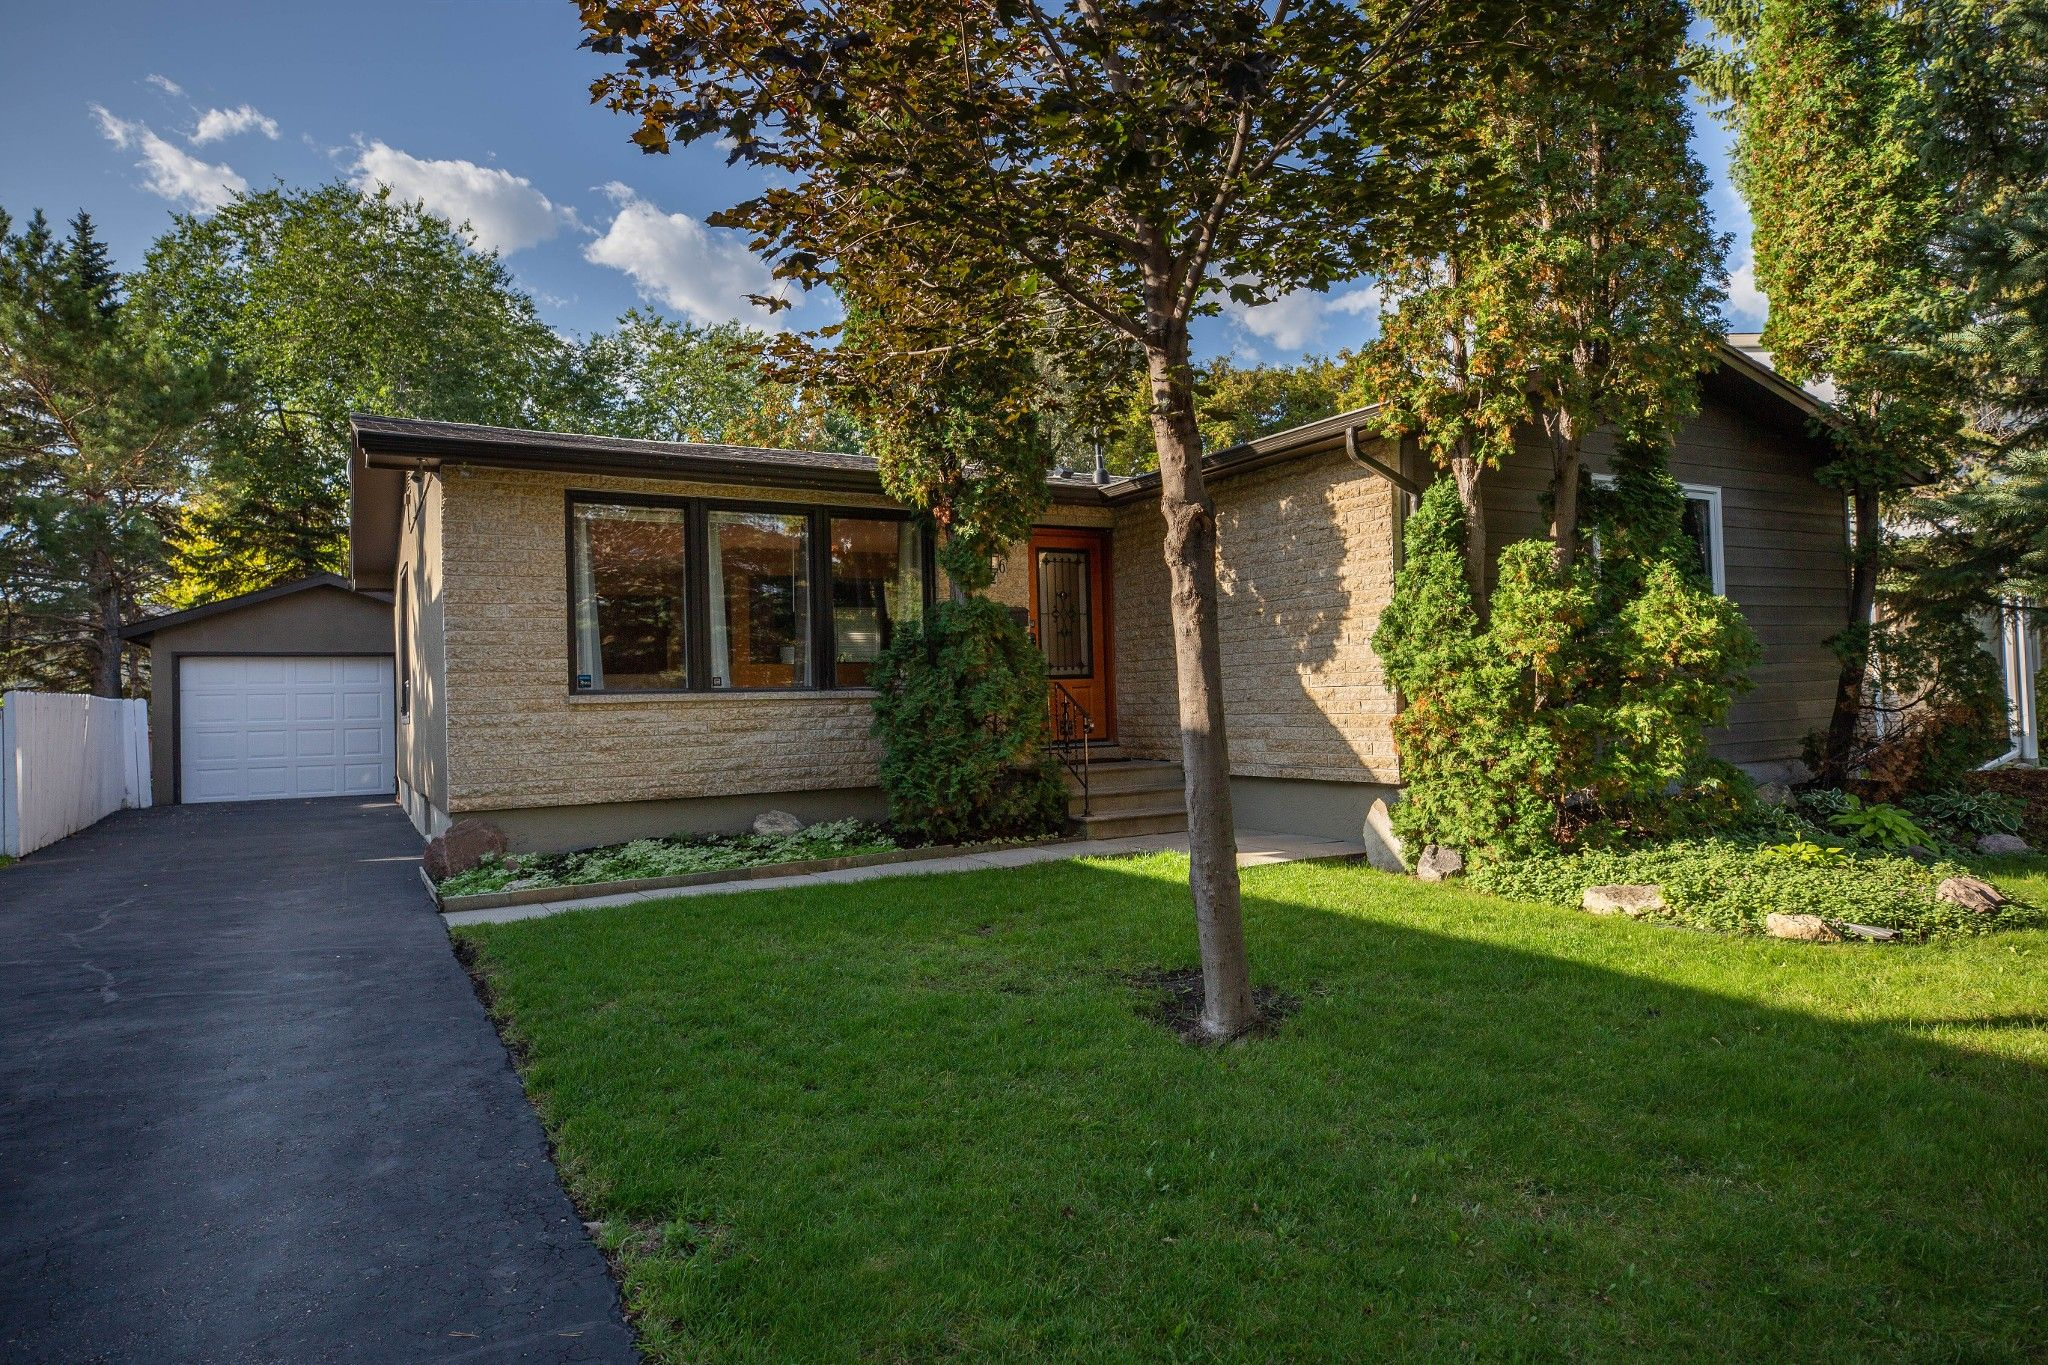 Main Photo: 26 Brookhaven Bay in Winnipeg: Southdale House for sale (2H)  : MLS®# 1926178